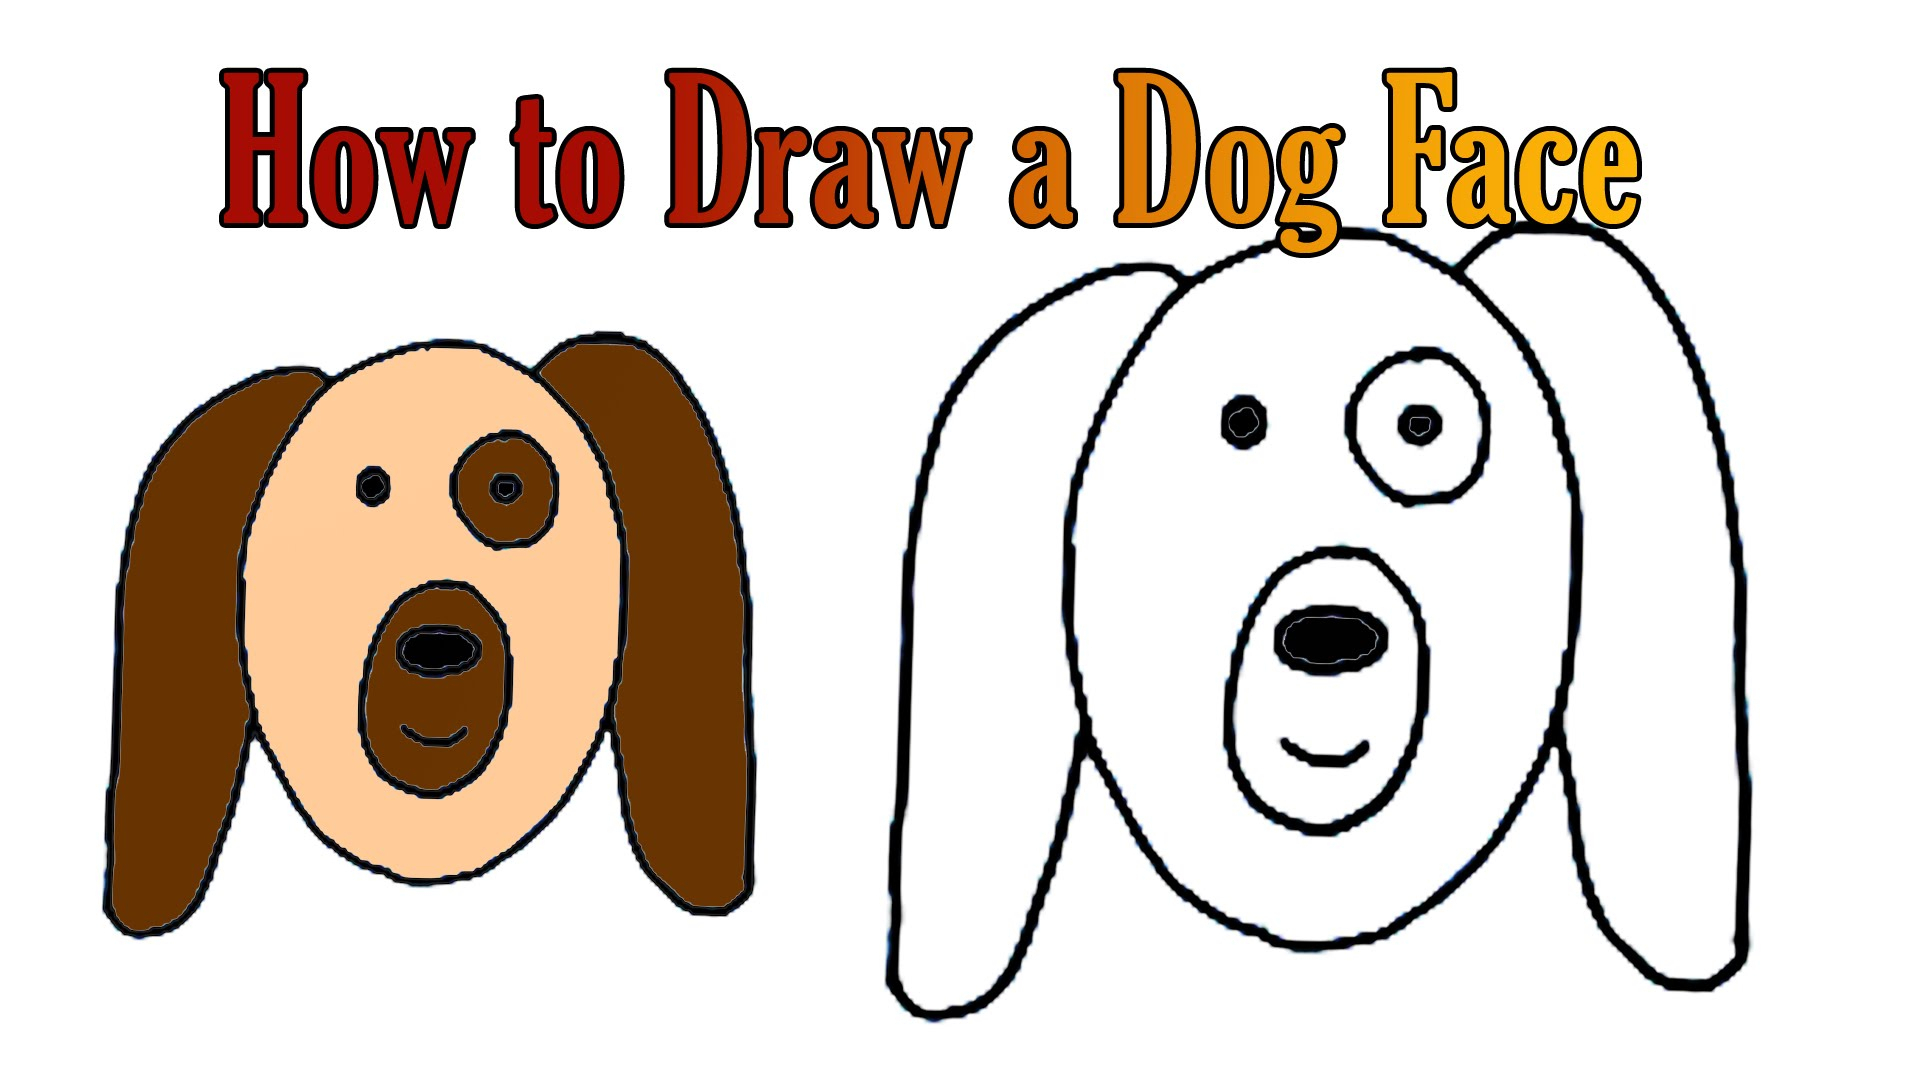 Dog Face Drawing Easy At Getdrawings Com Free For Personal Use Dog